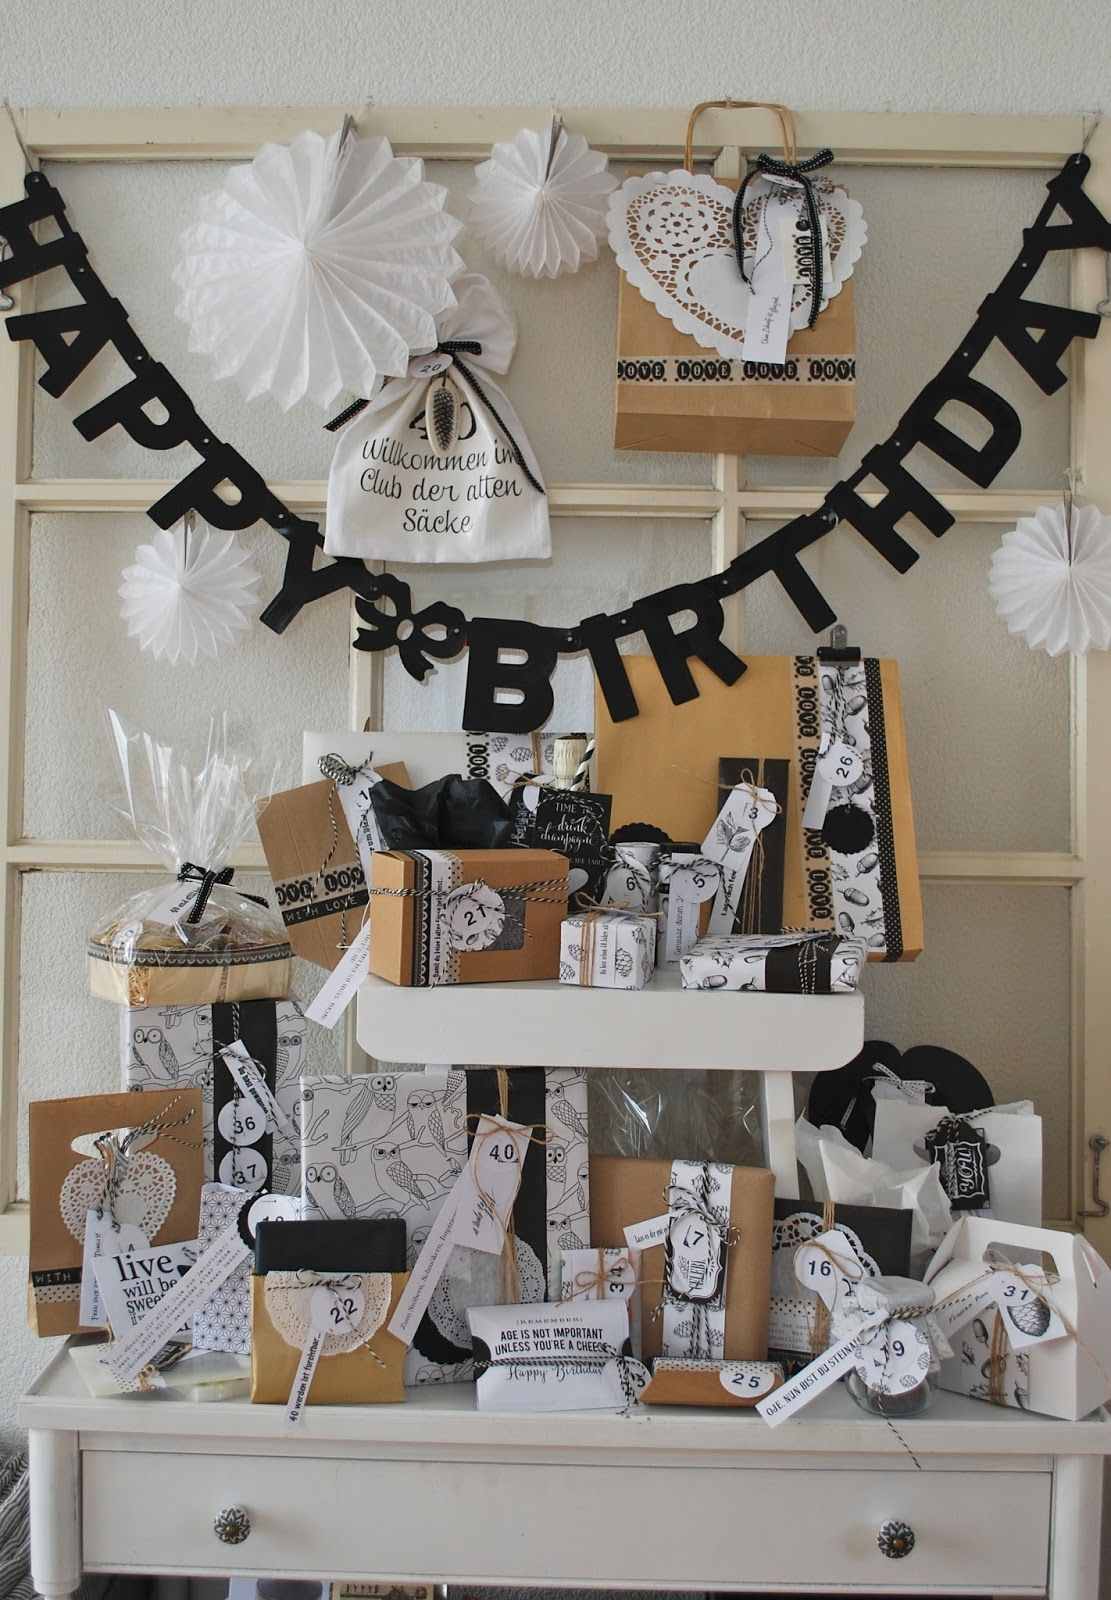 40 zum 40sten (mamas kram) | Privat | Pinterest | Birthdays, Gift ...